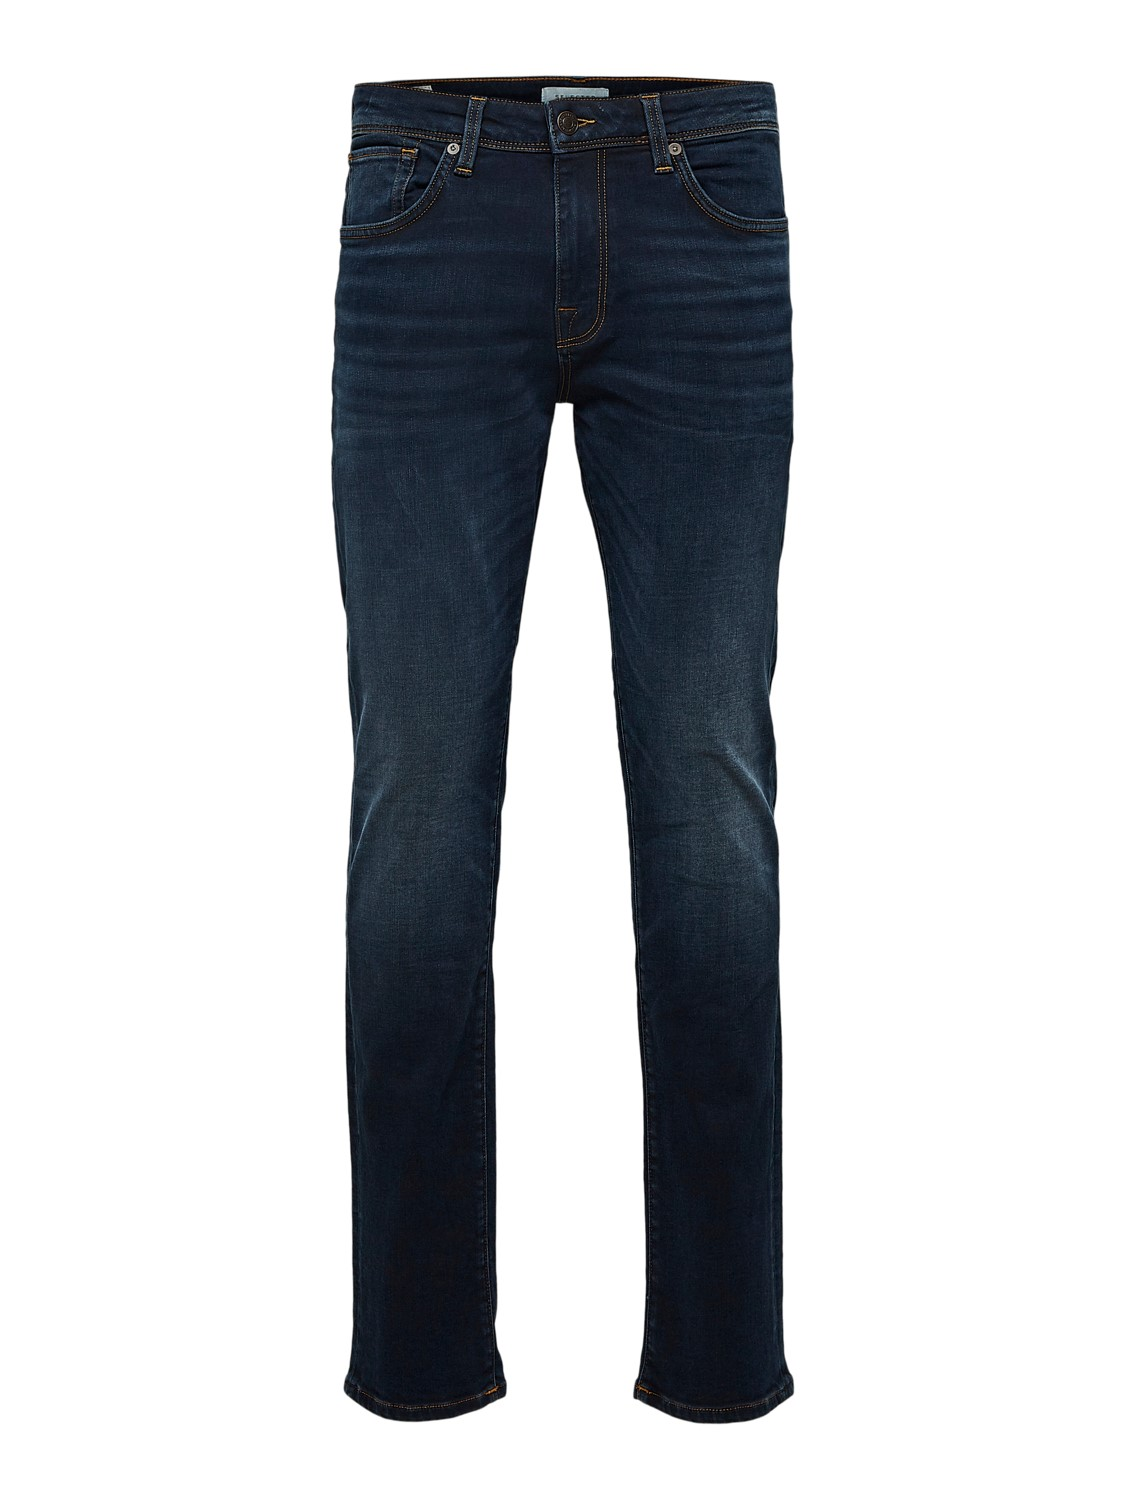 Selected Jeans - Leon 6231 Dark Blue | Gate36 Hobro